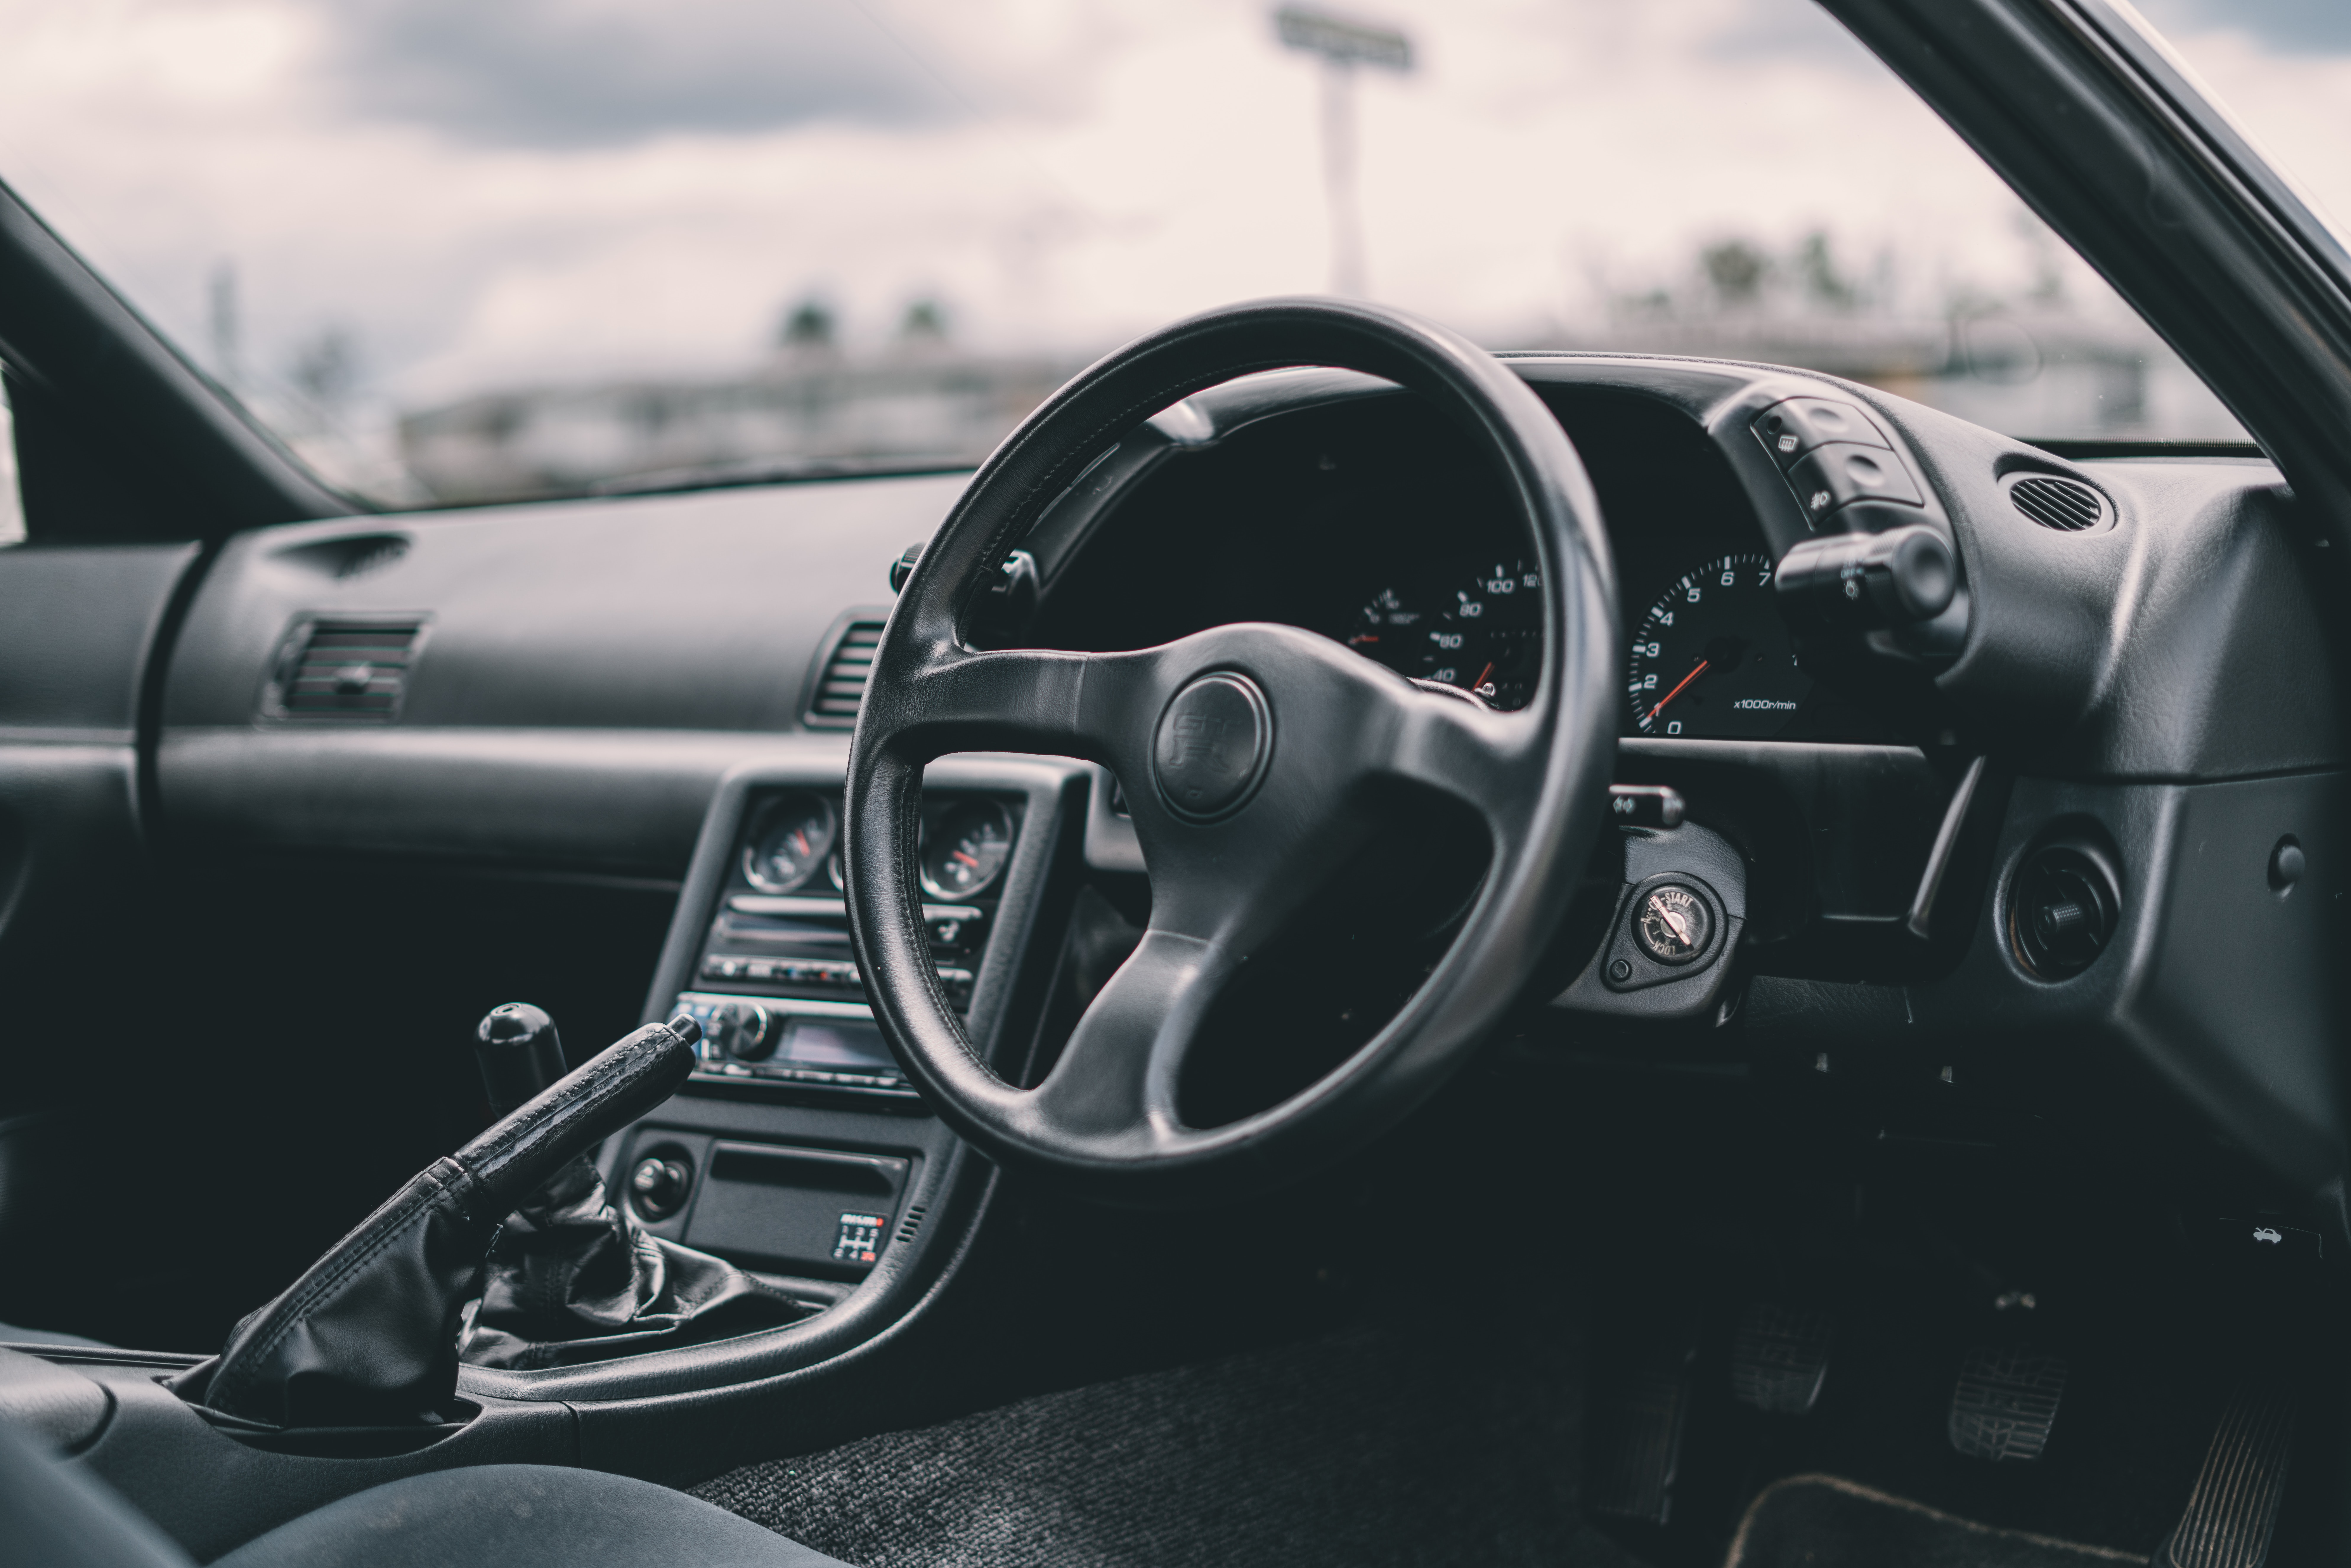 nissan GT-R JDM interior with right hand drive steering wheel layout.